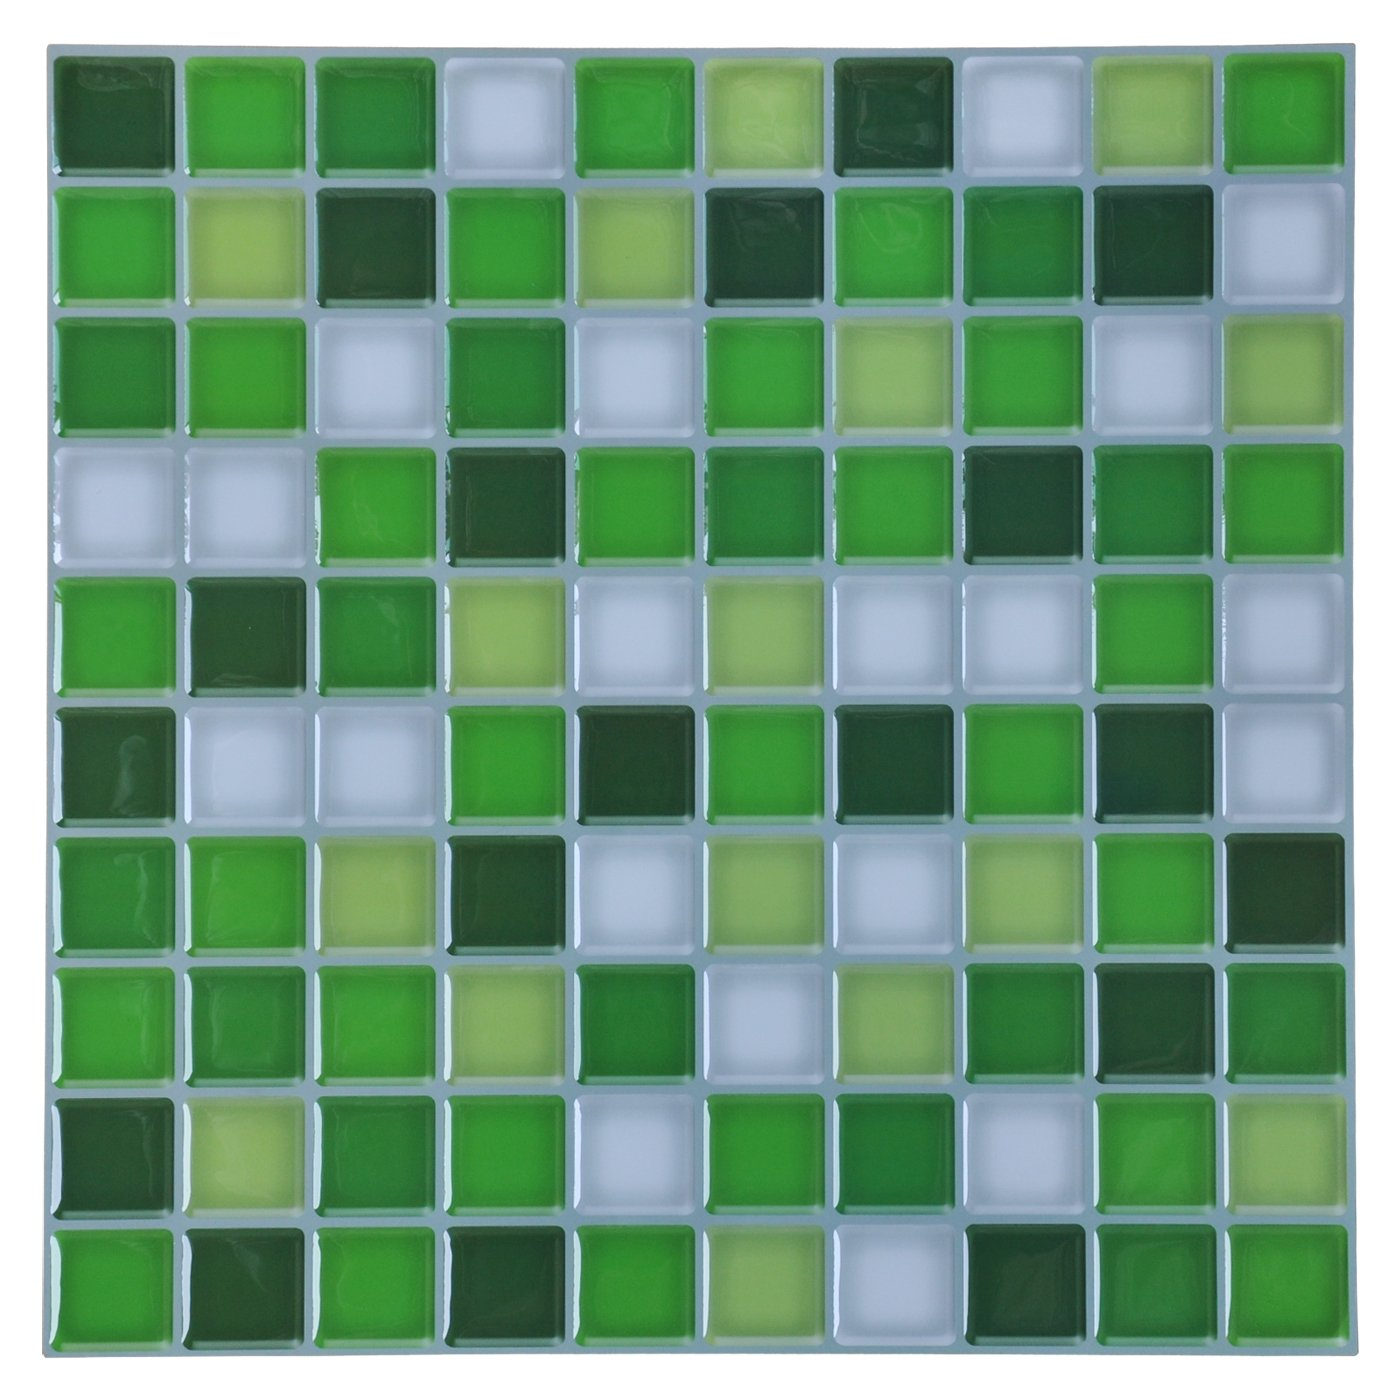 Cheap bal wall tile adhesive find bal wall tile adhesive deals on get quotations hentl peel and stick tile 12 x 12 peel and stick kitchen backsplash green dailygadgetfo Choice Image